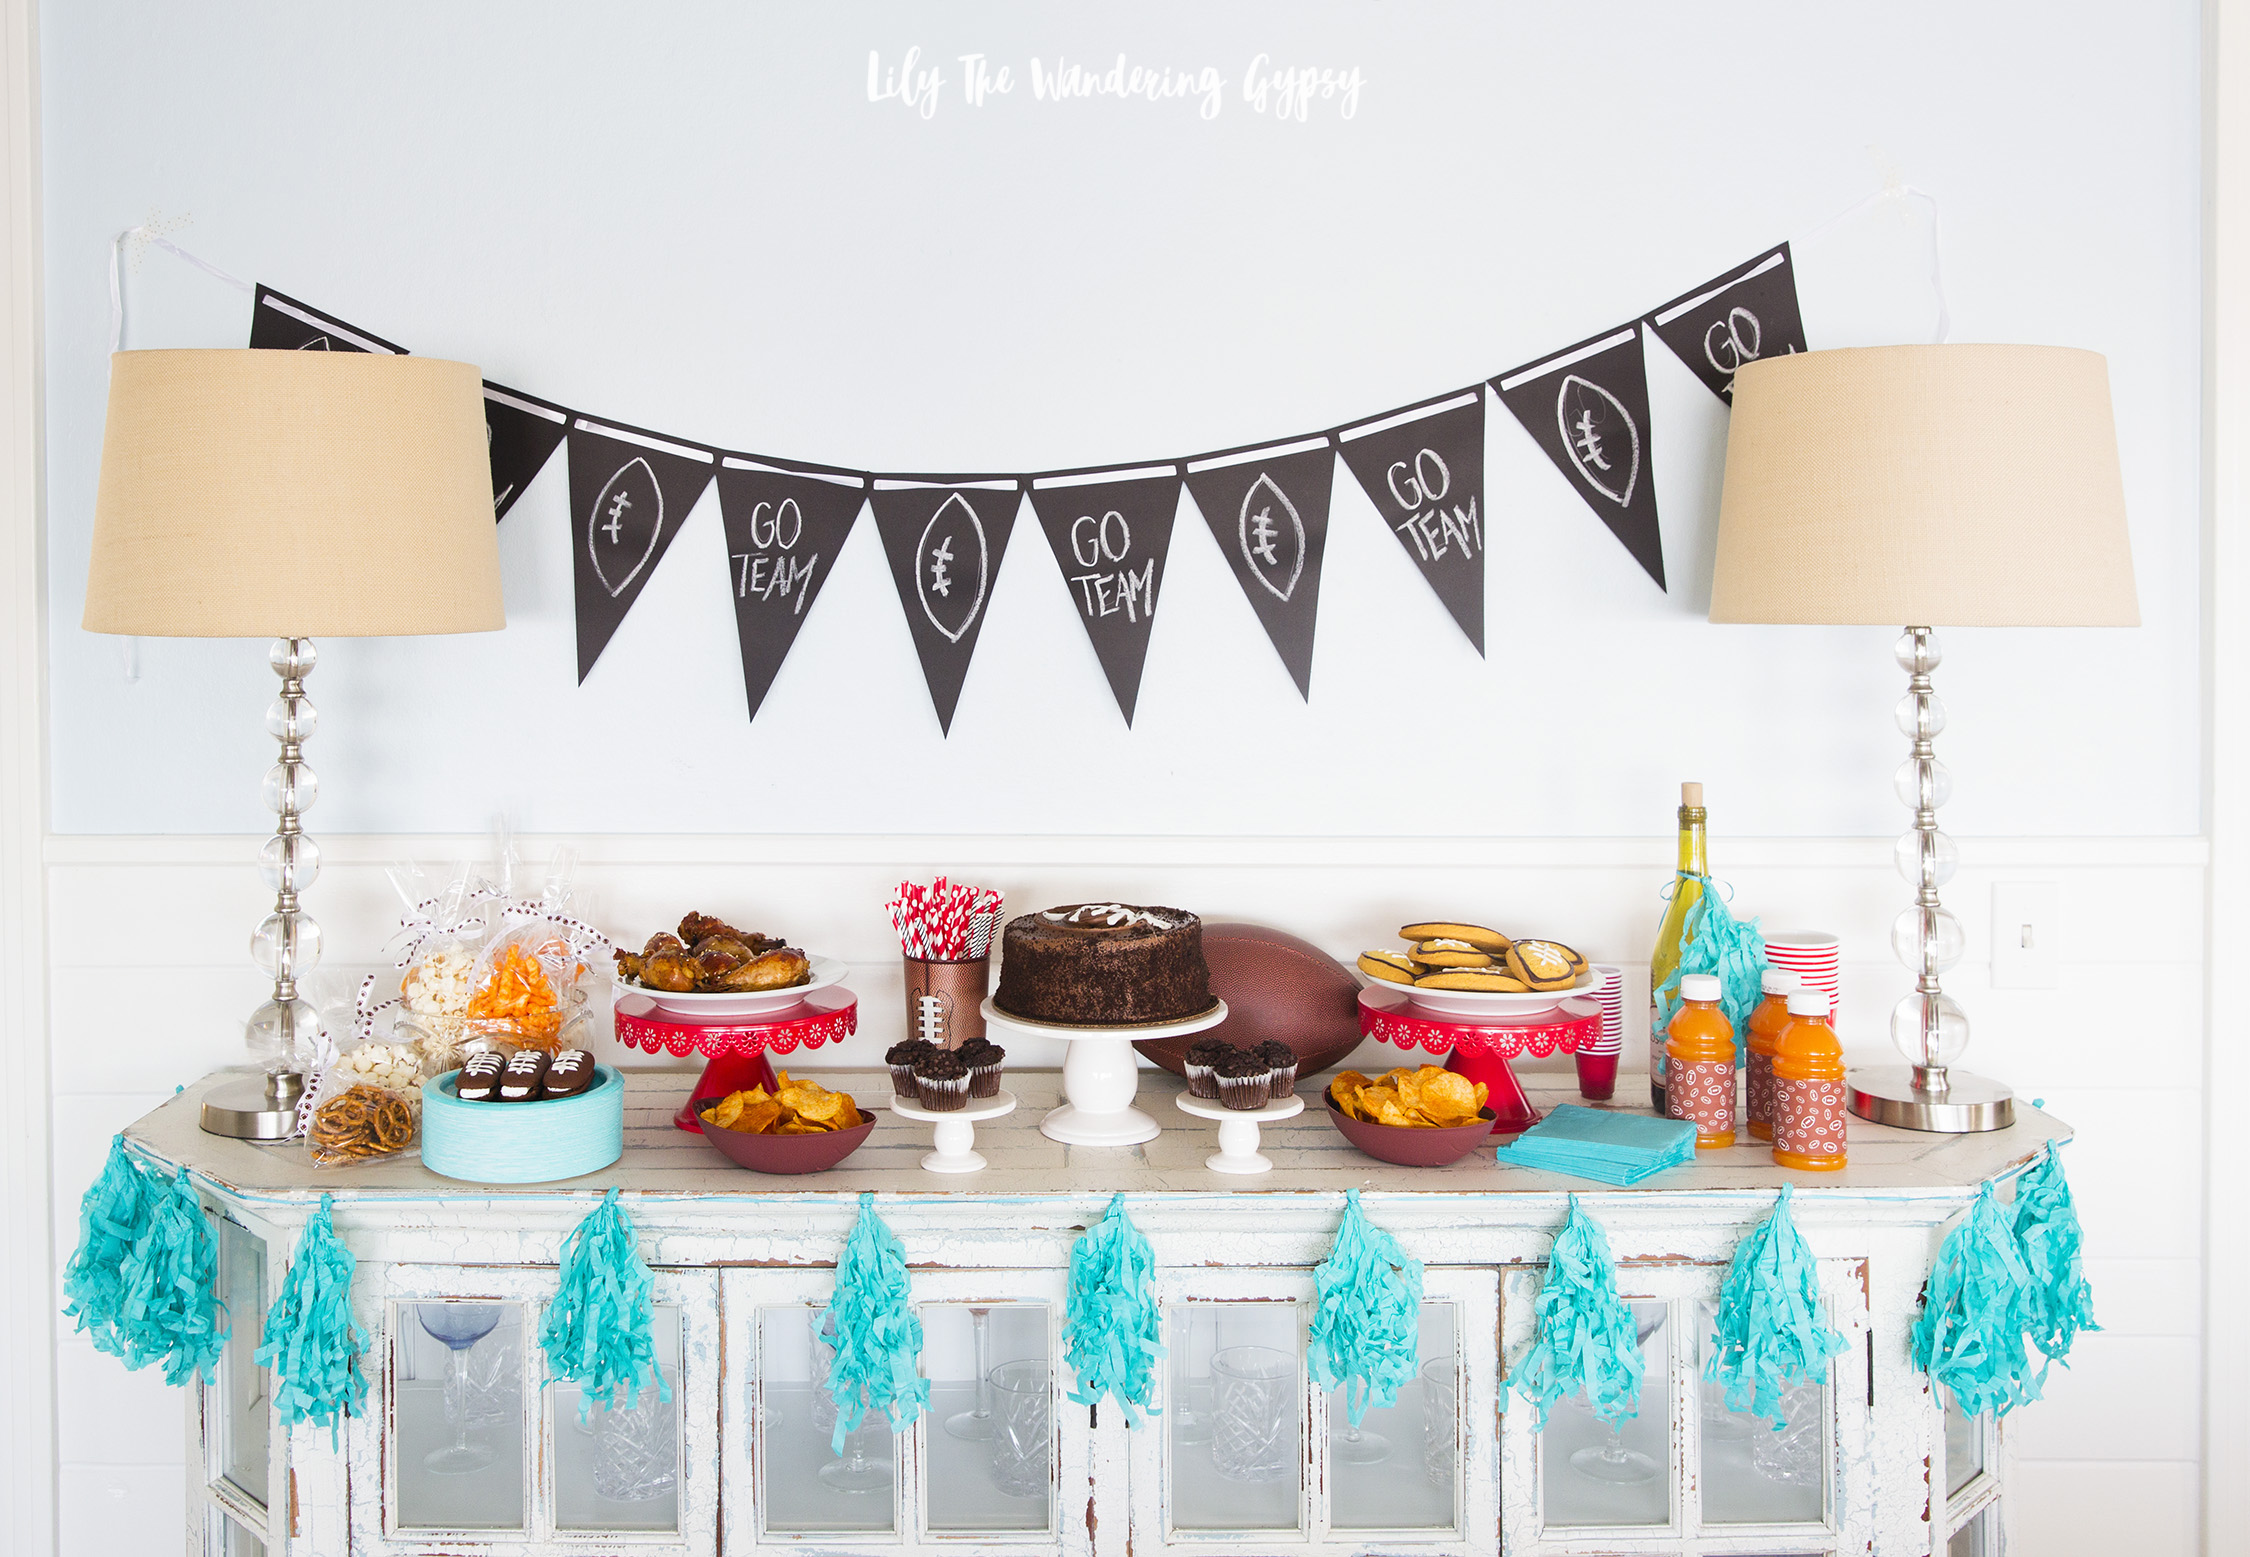 Game Day Decor and Food Ideas!